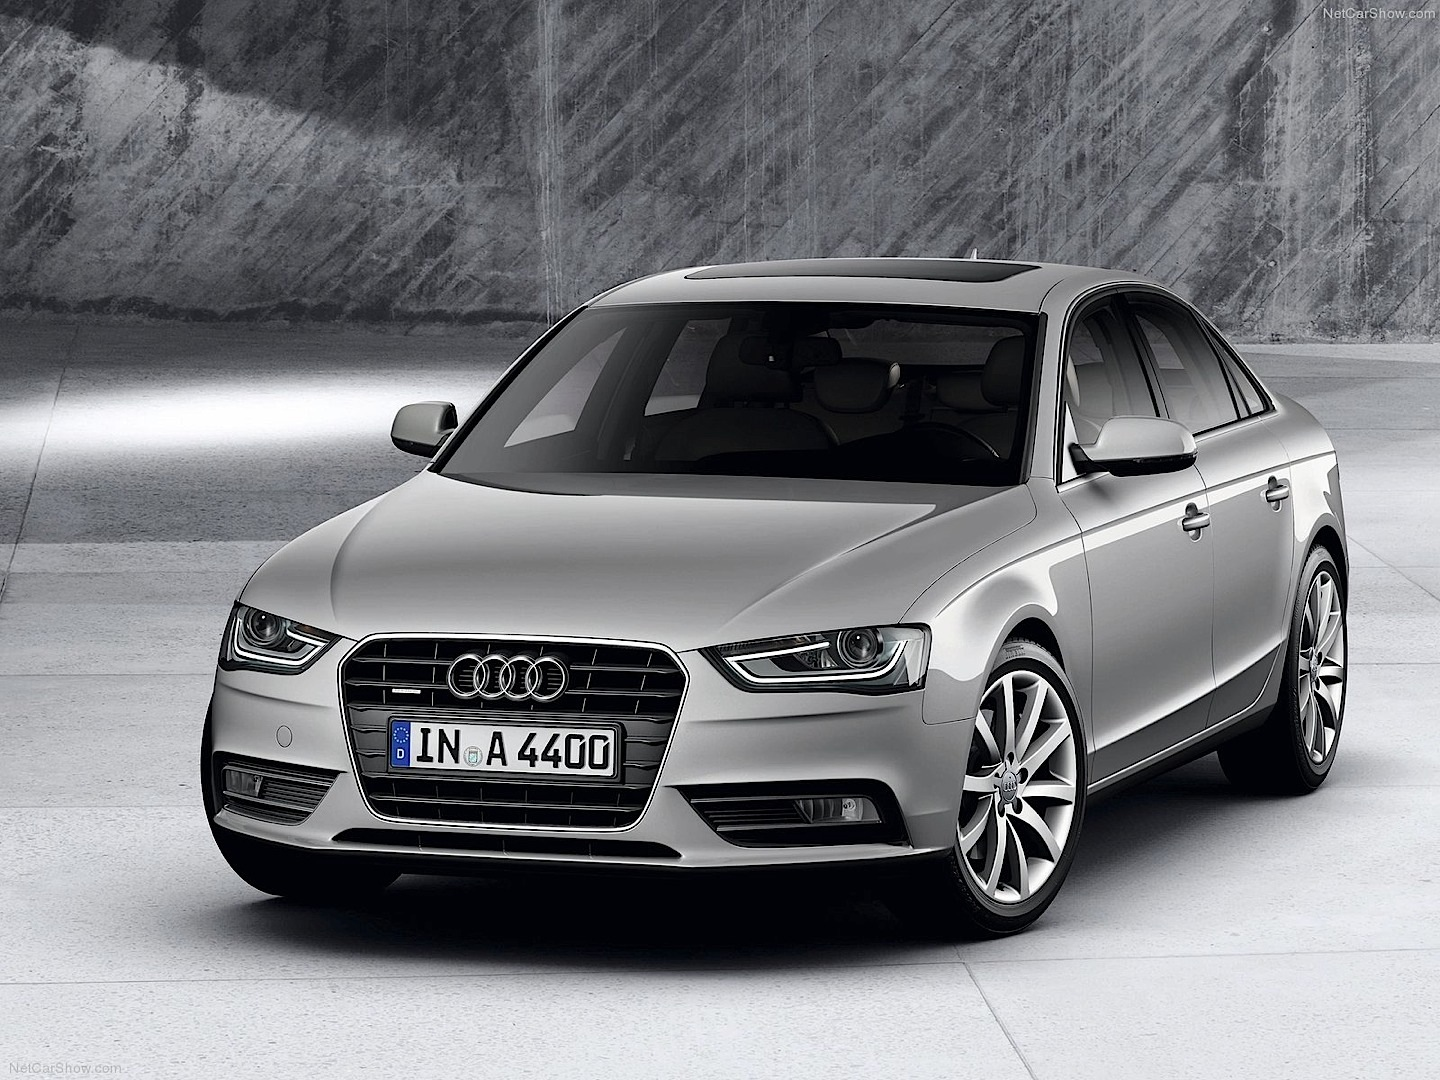 audi a4 specs 2012 2013 2014 2015 2016 autoevolution. Black Bedroom Furniture Sets. Home Design Ideas